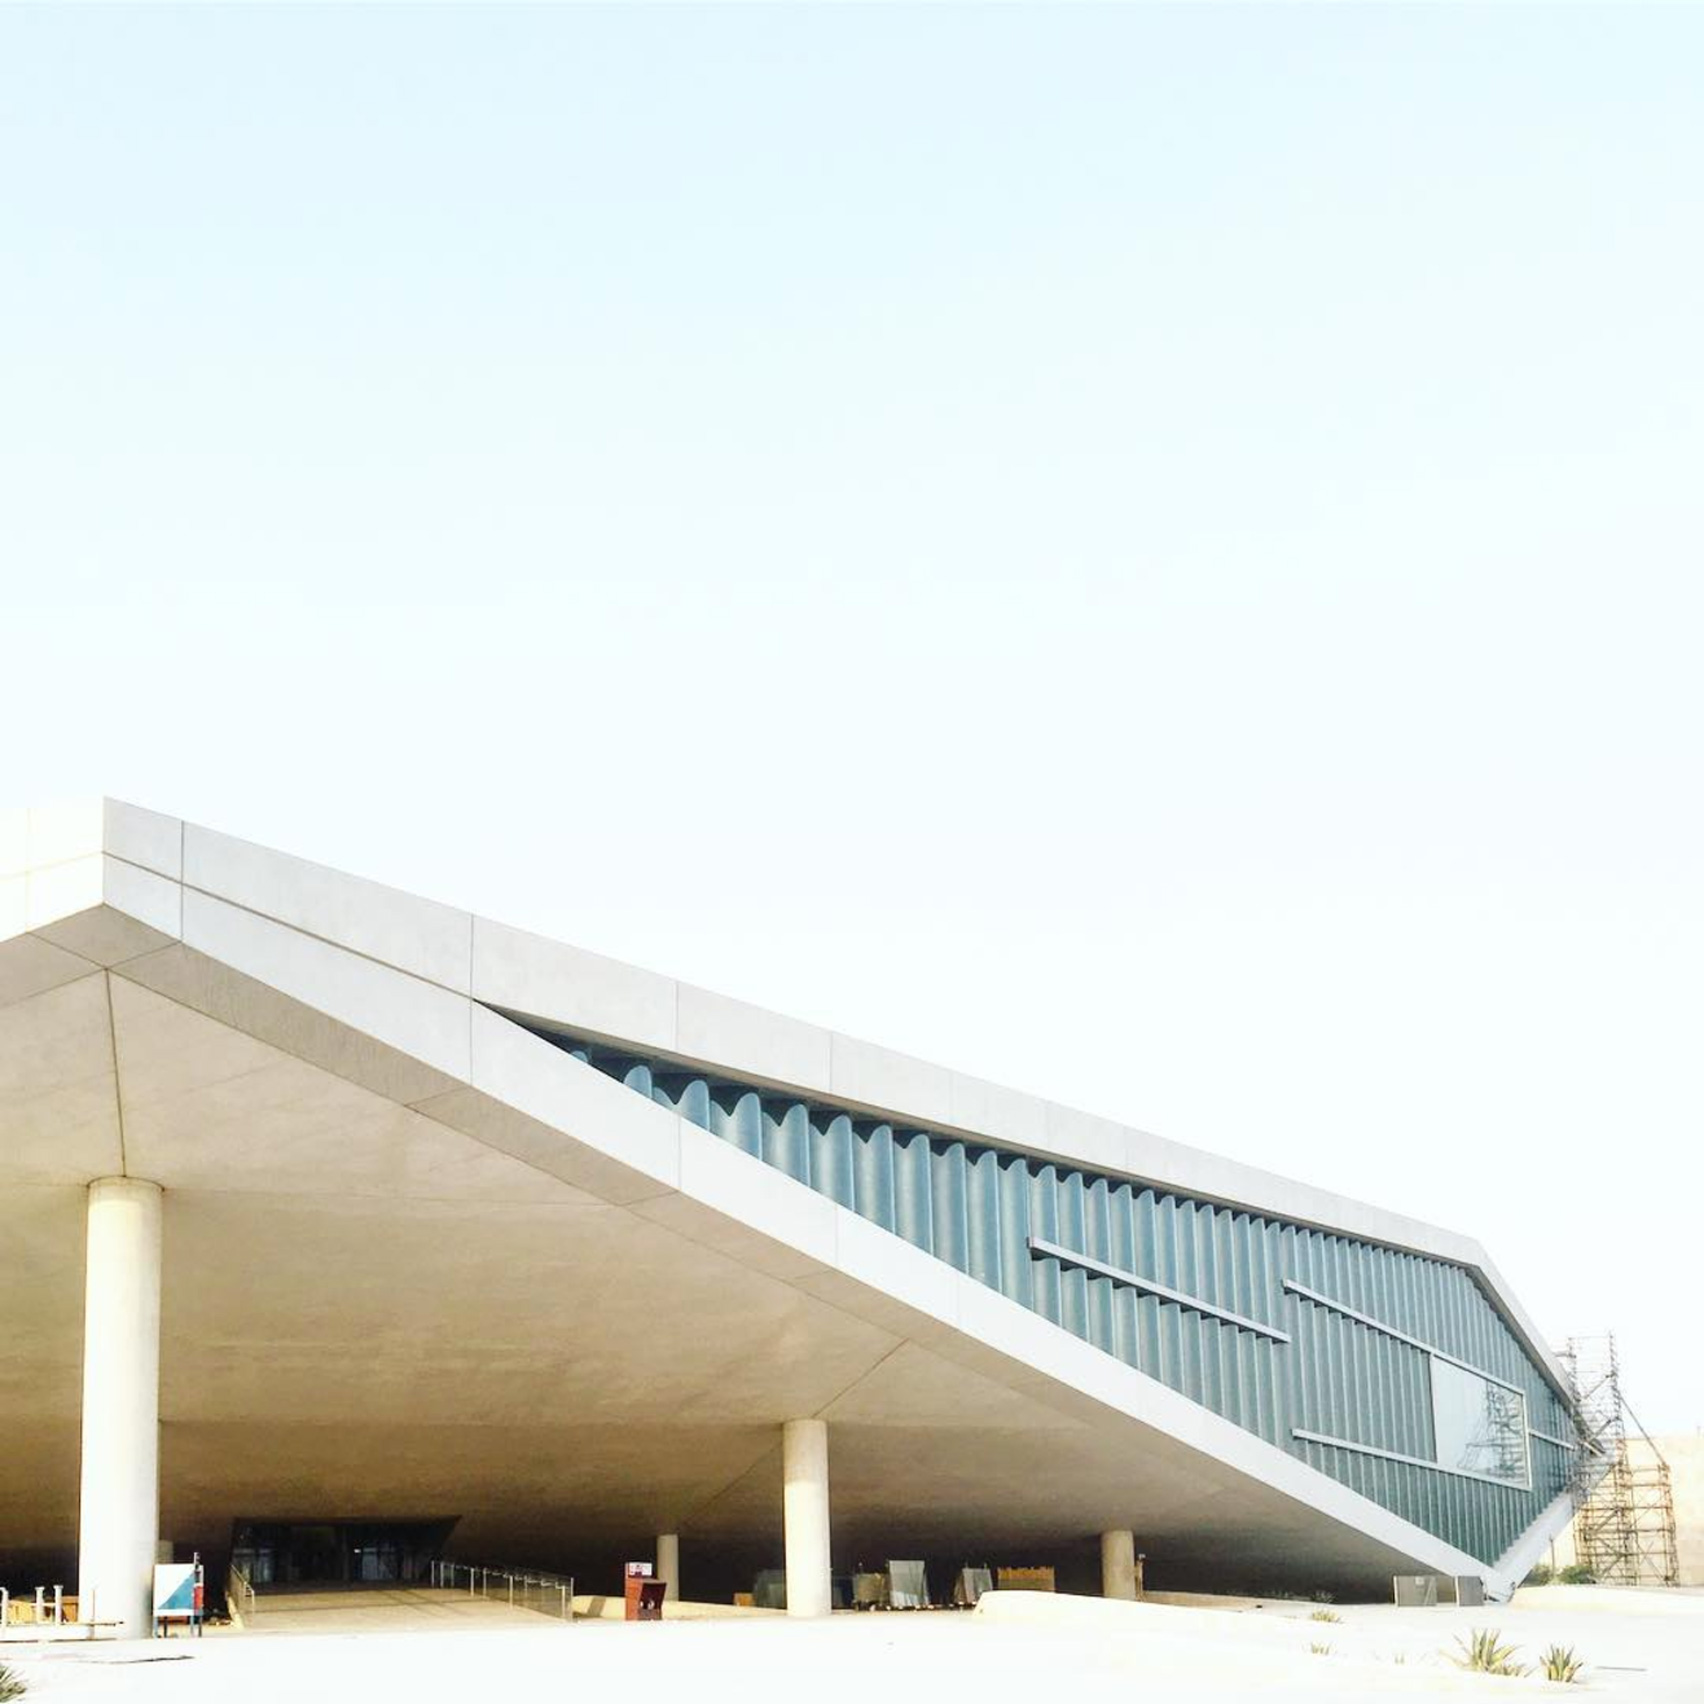 Oma completes industrial style exhibition centre in old for Architecture firms in qatar